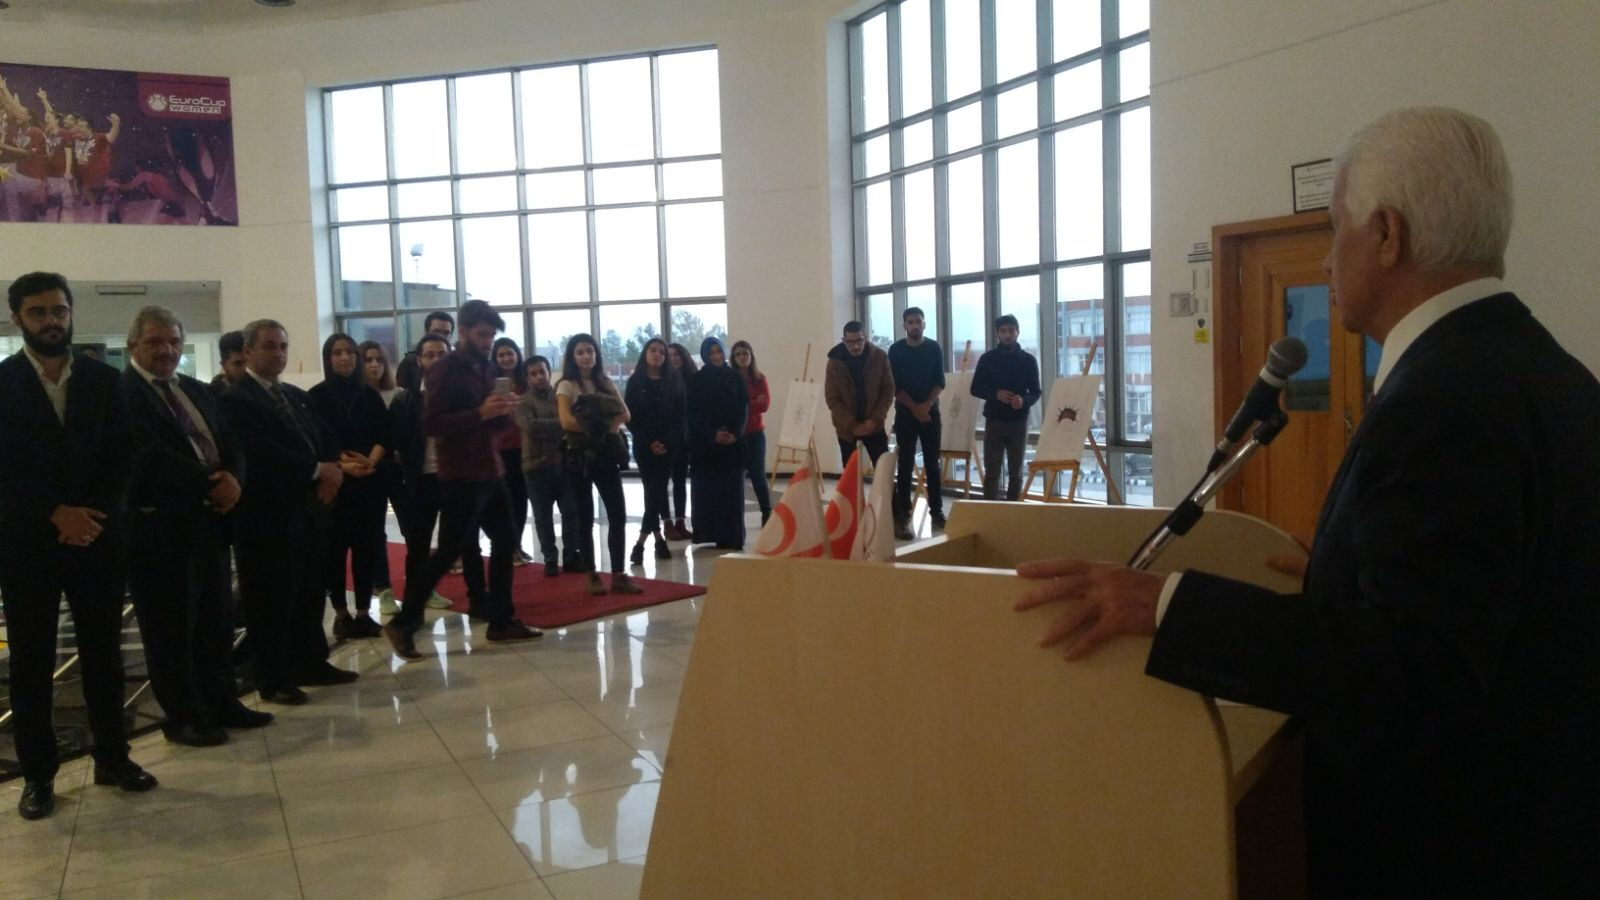 Organized by the Art Club of the Dean of Students Office of Near East University, 'Hata Kimde', exhibition and play, was realized with the participation of the third President Dr. Derviş Eroğlu